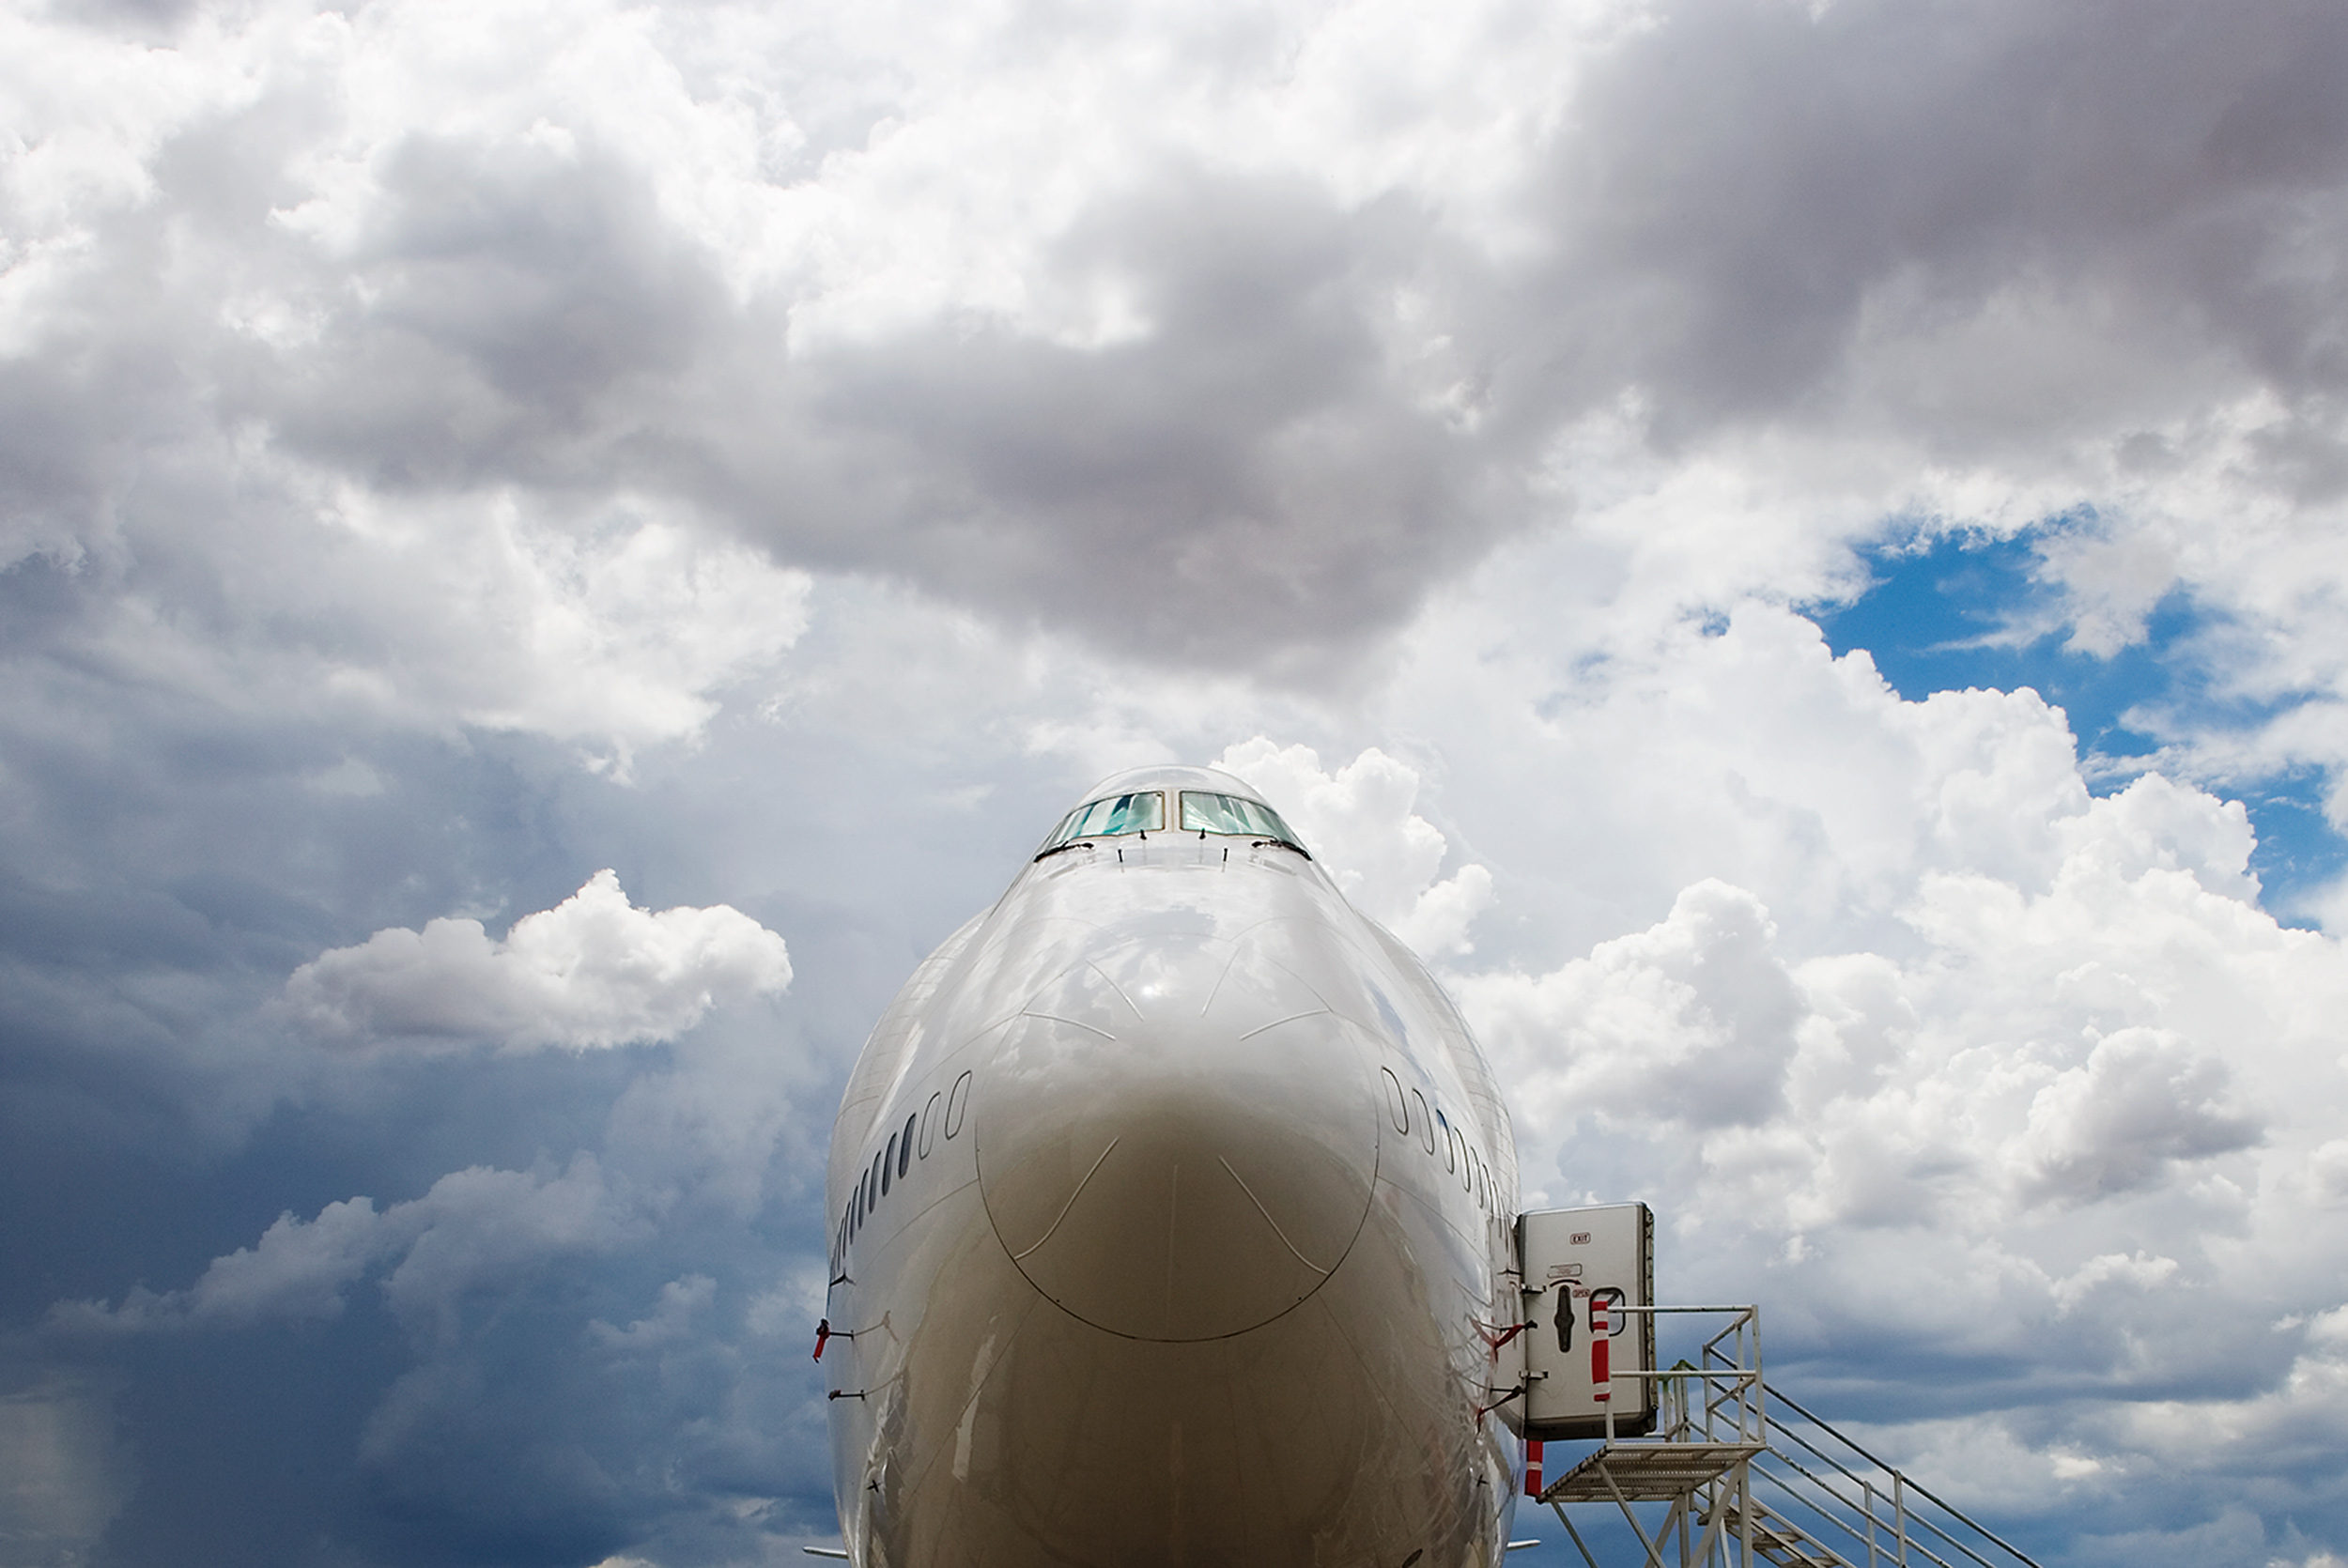 Boeing Dreamlifter Nose - Steve Craft Photography - Phoenix Arizona Commercial Photographer